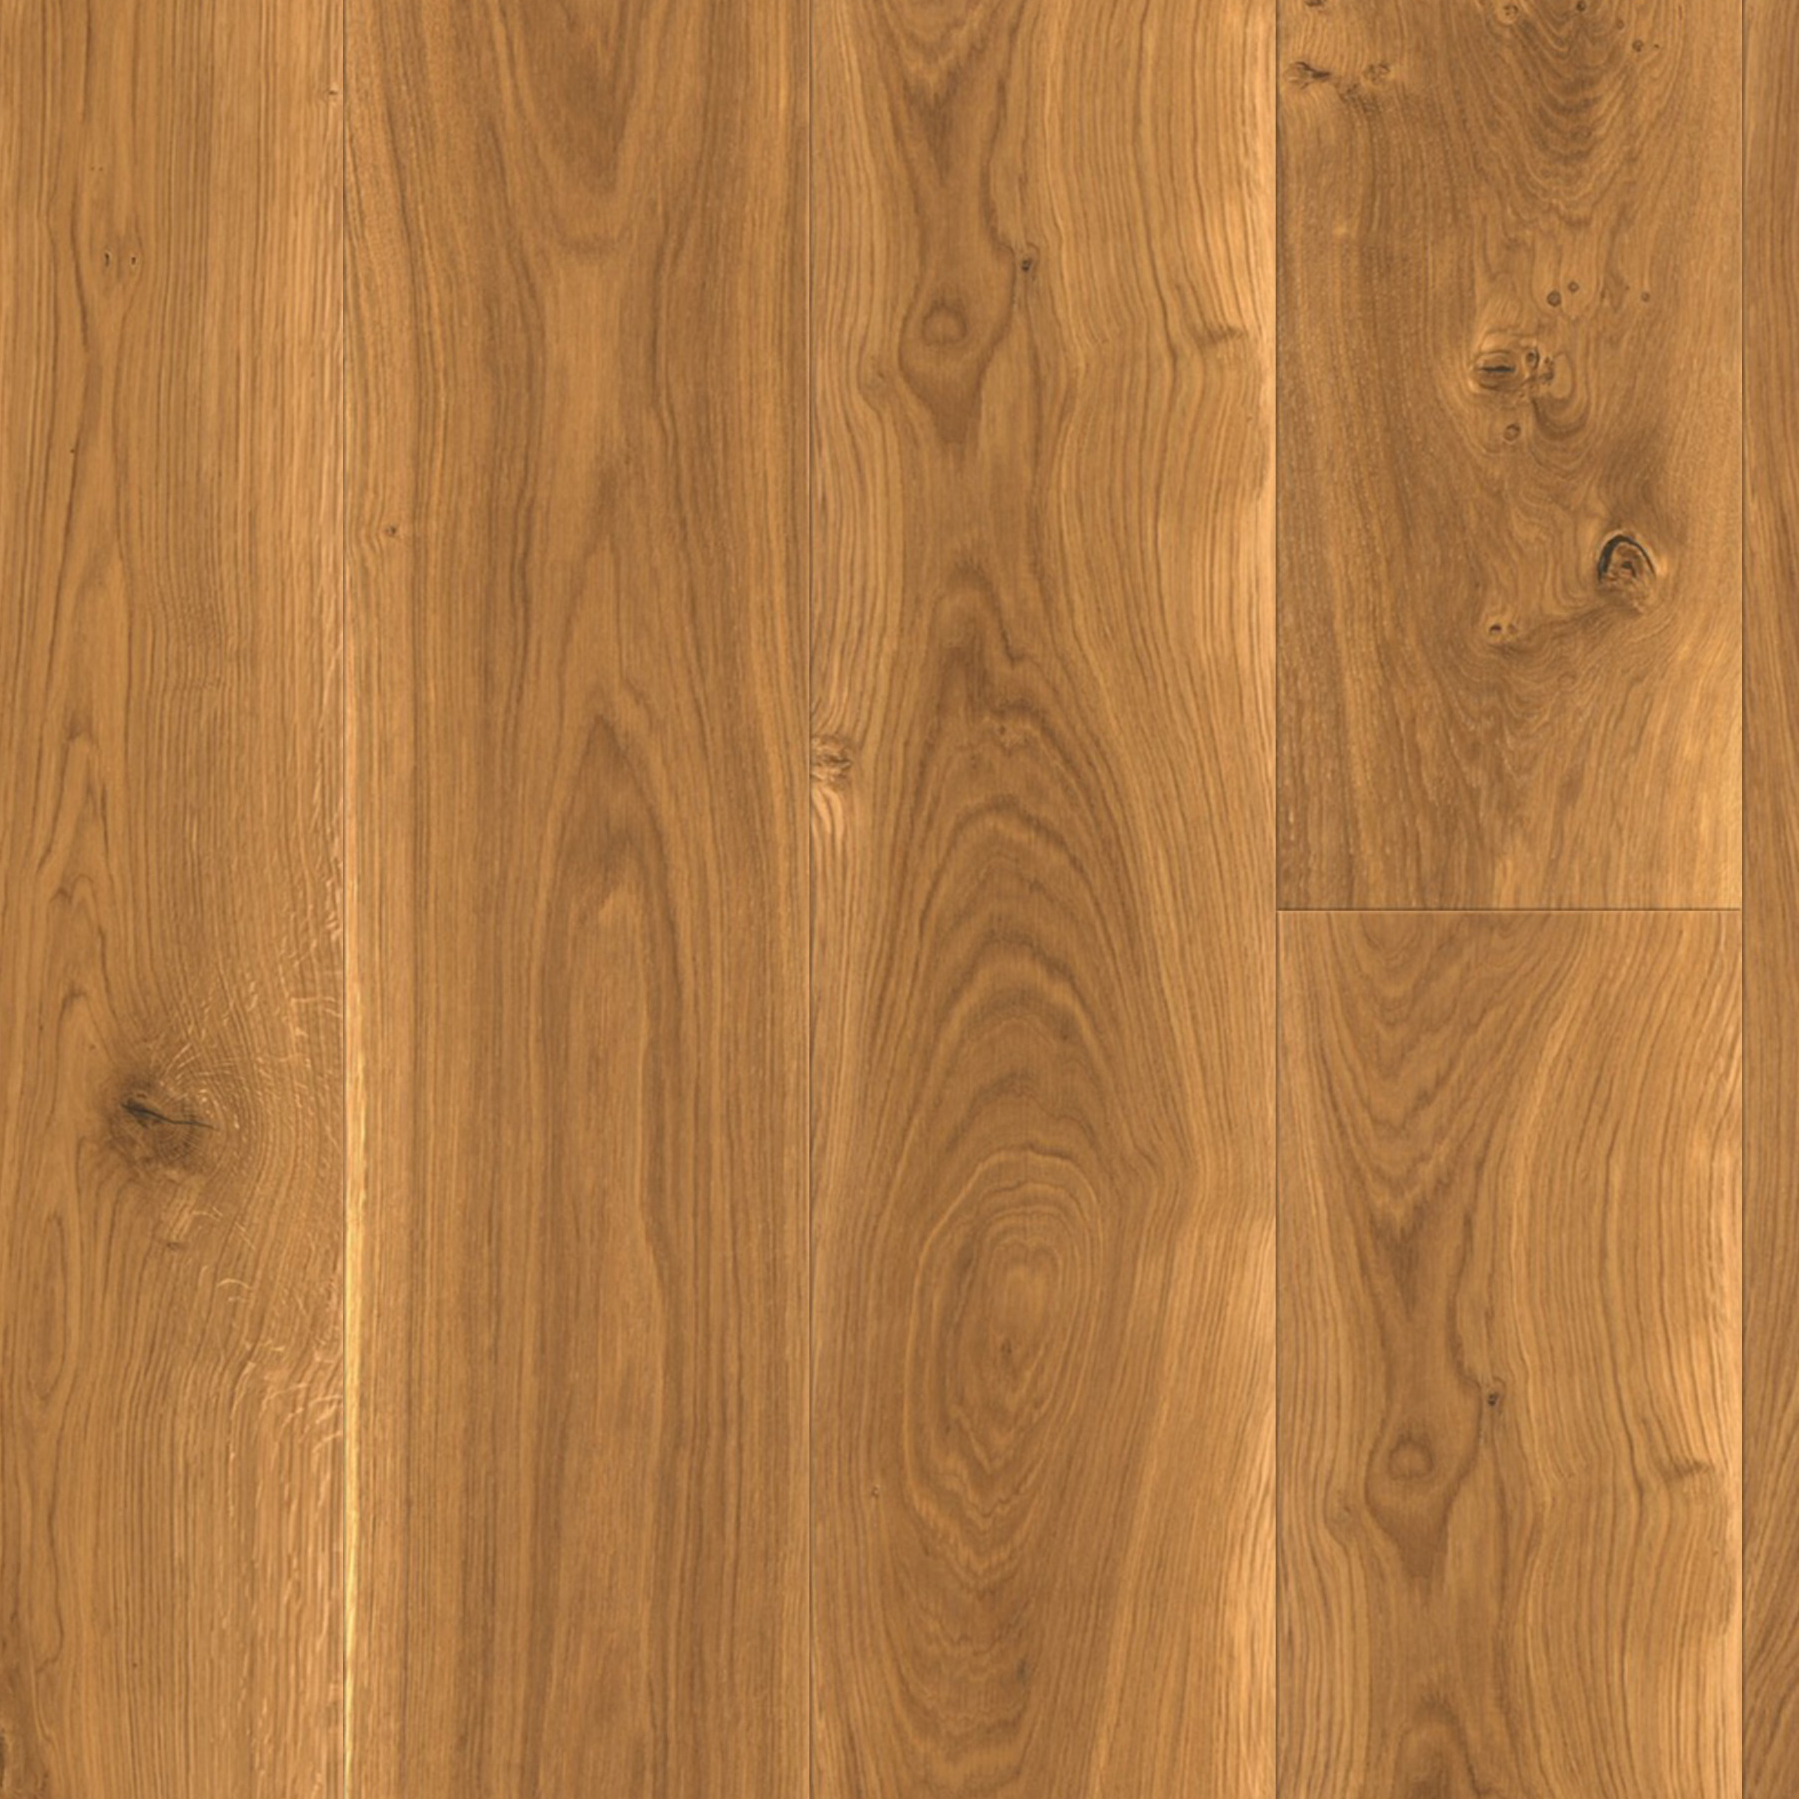 Brushed & Oiled<br>2647